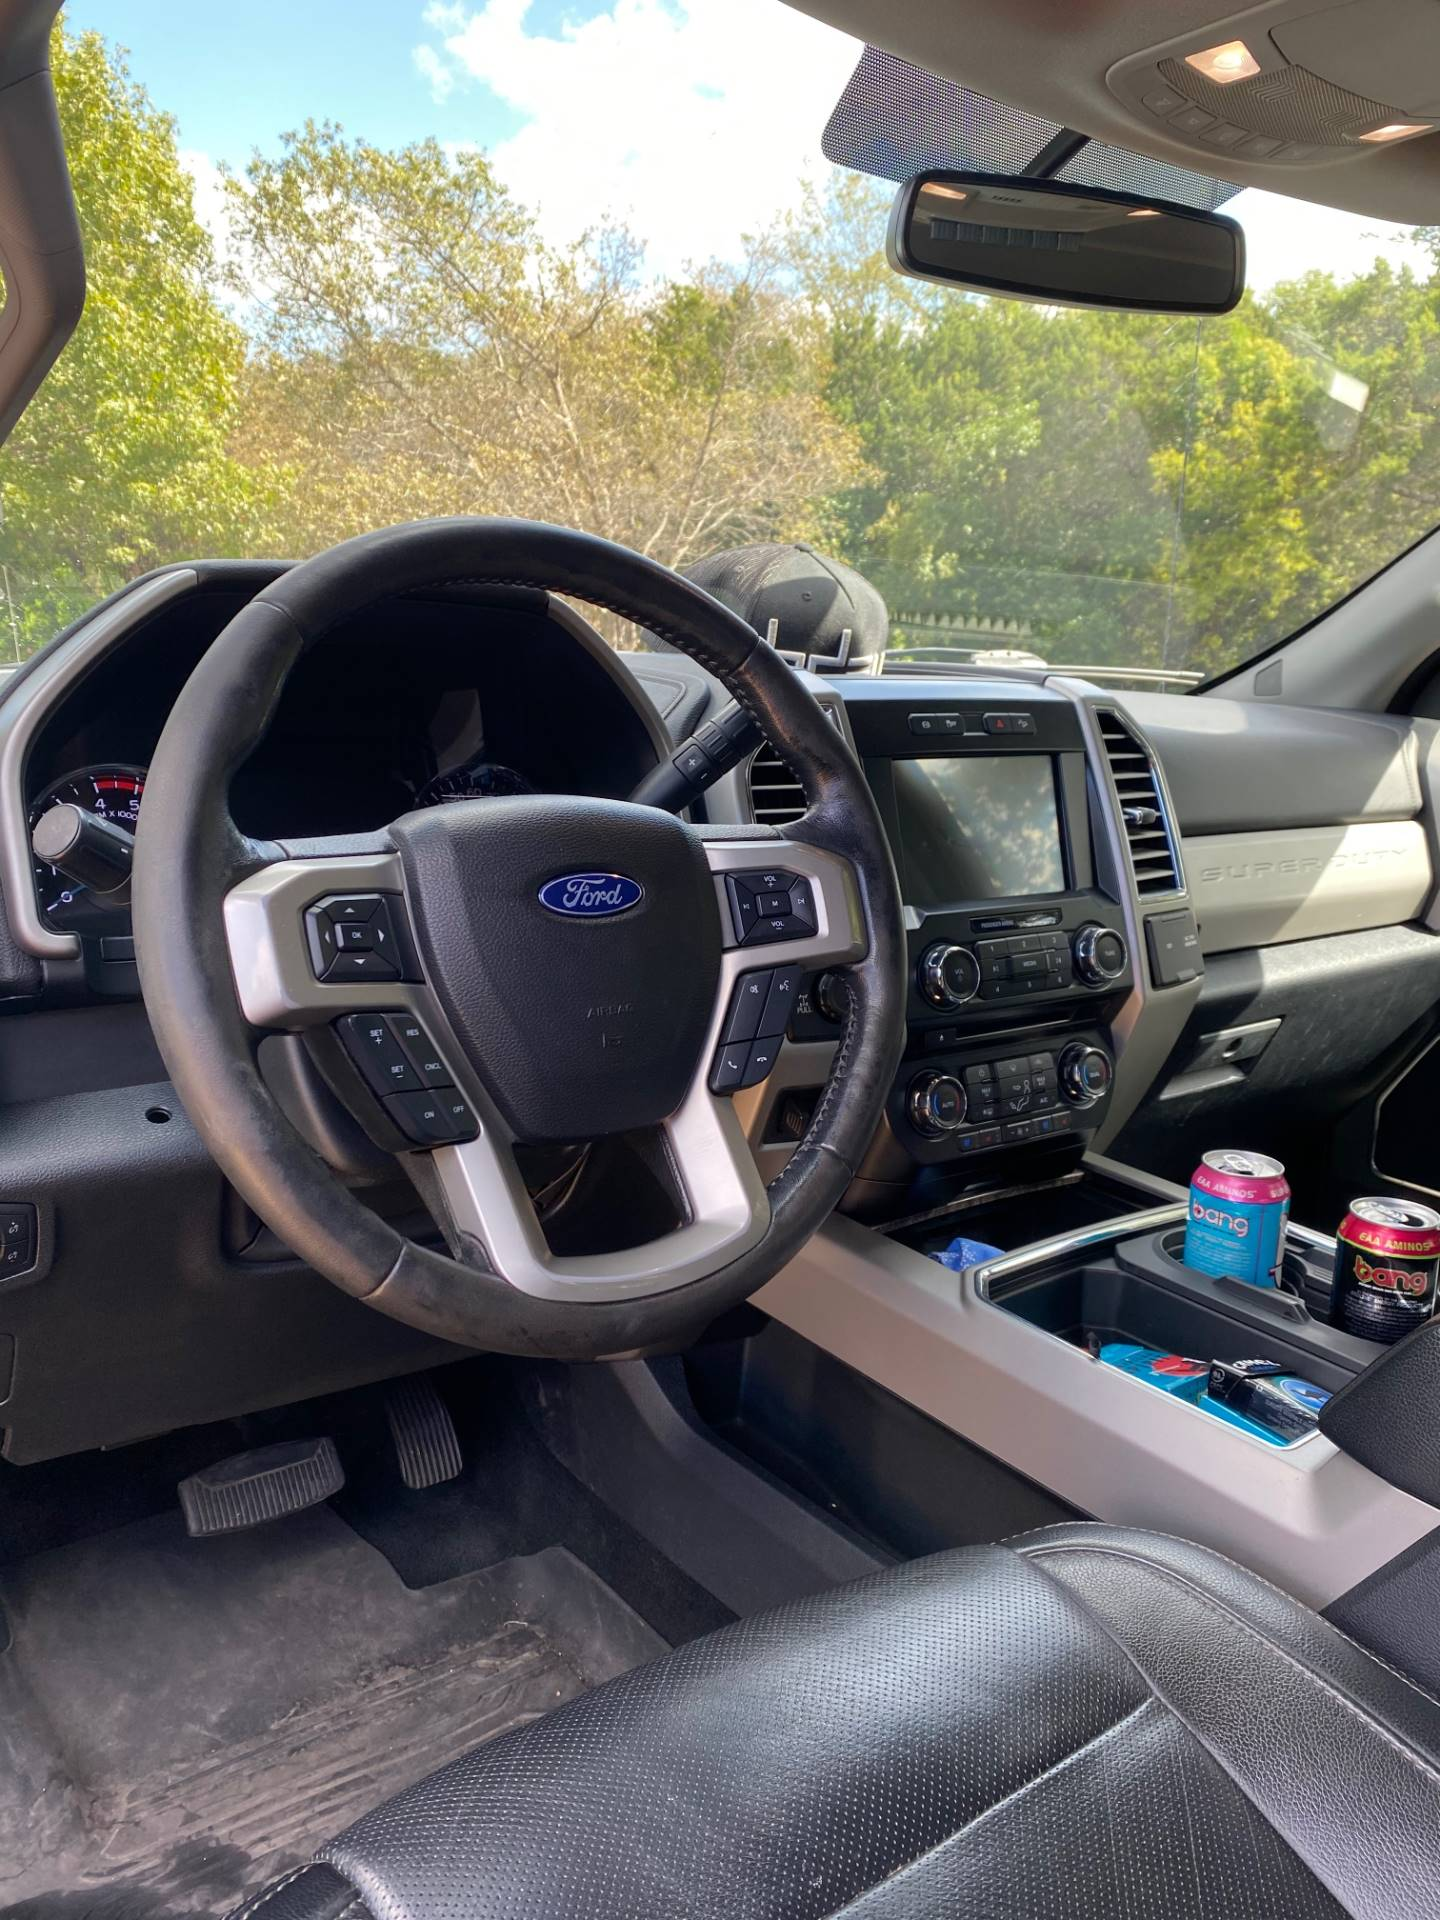 2017 Ford F-350 Lariat Ultimate Pkg 4x4 Diesel in Waco, Texas - Photo 10